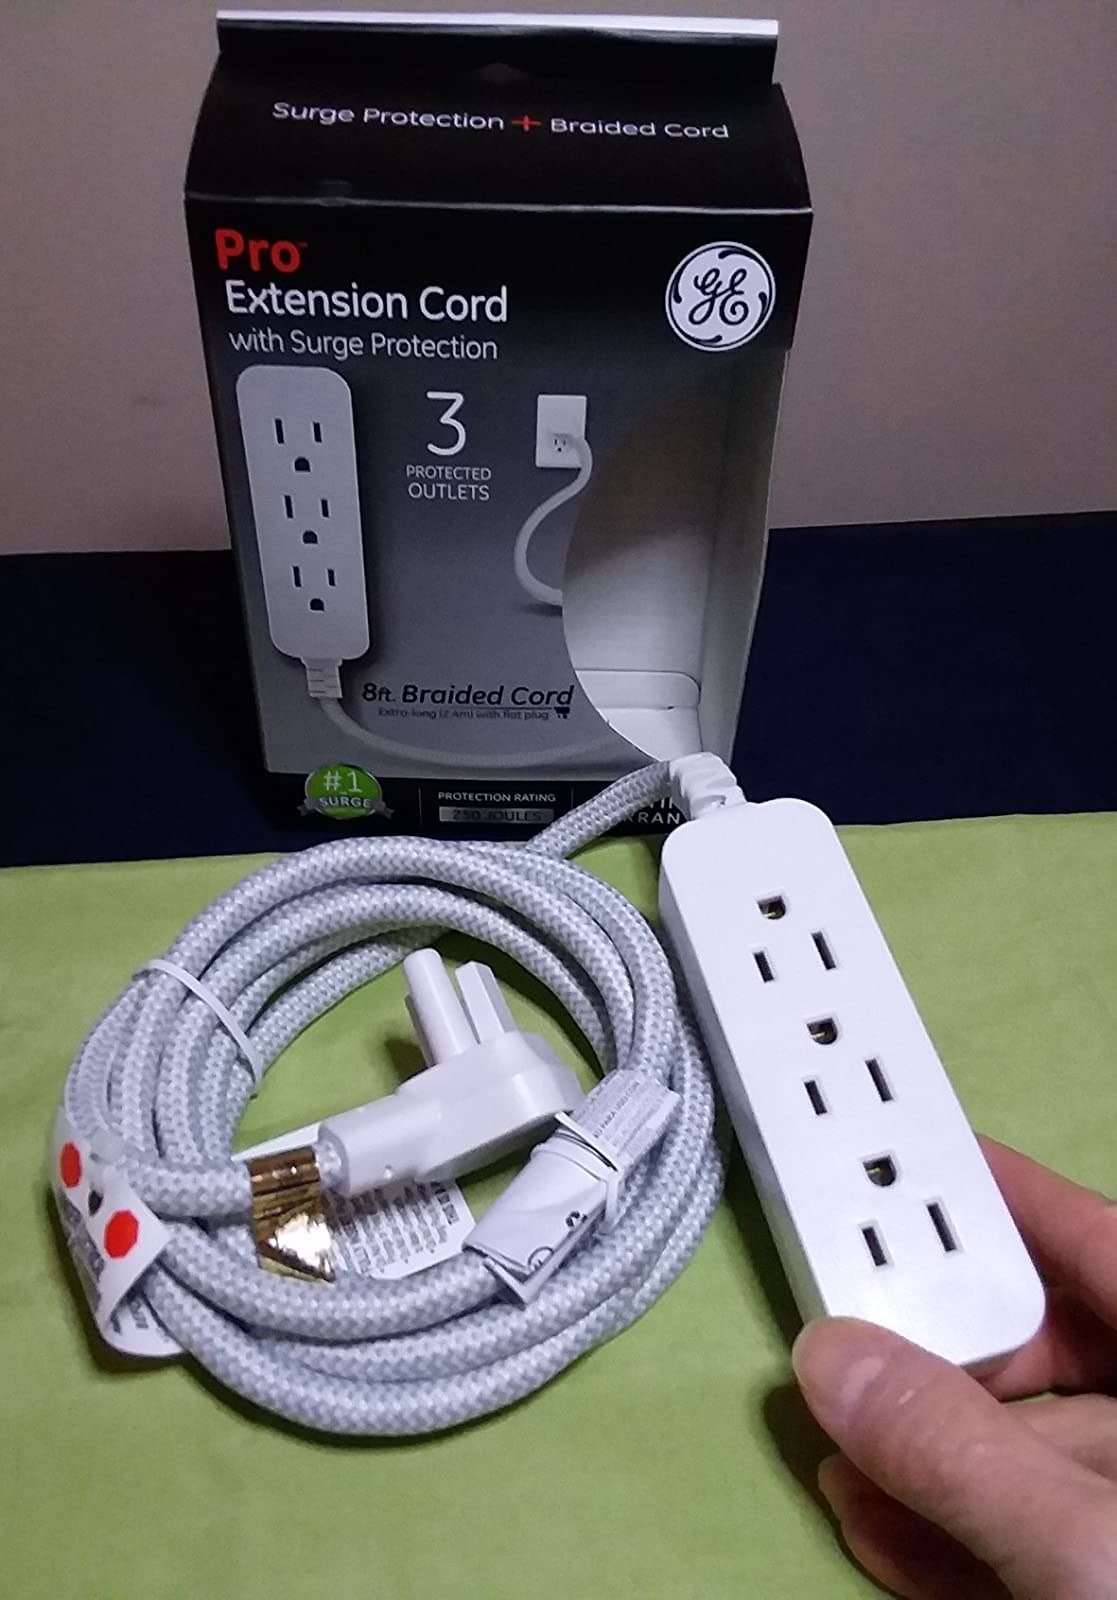 reviewer holding the GE extension cord